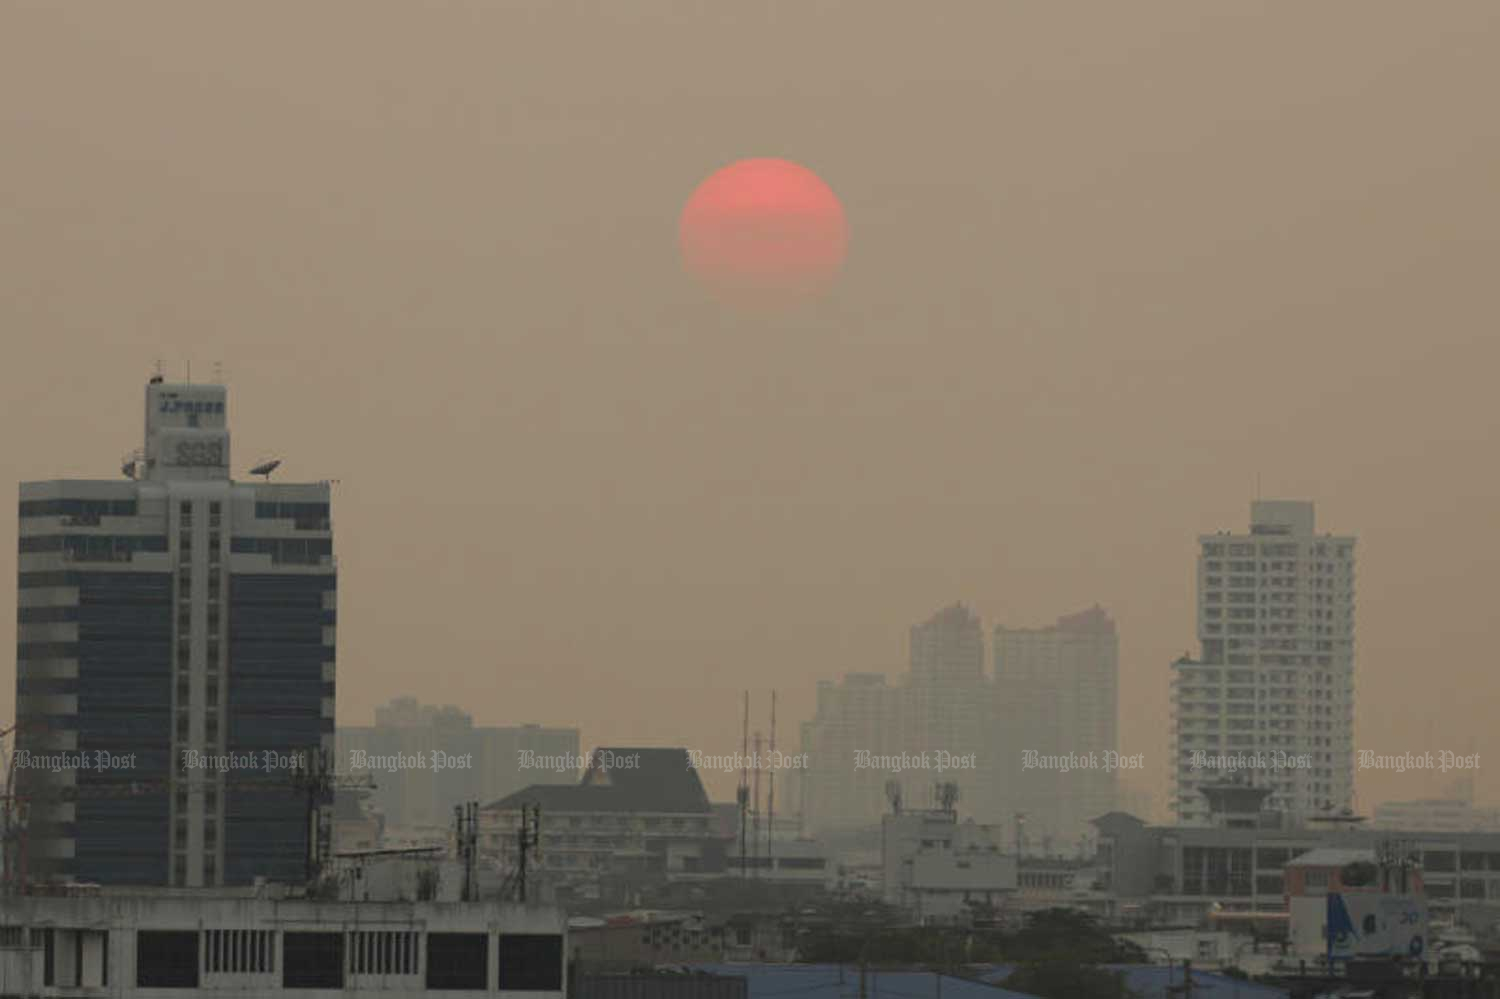 The sun sets in Bangkok sky shrouded by thick smog on Tuesday evening. (Photo by Nathaphol Lovakit)